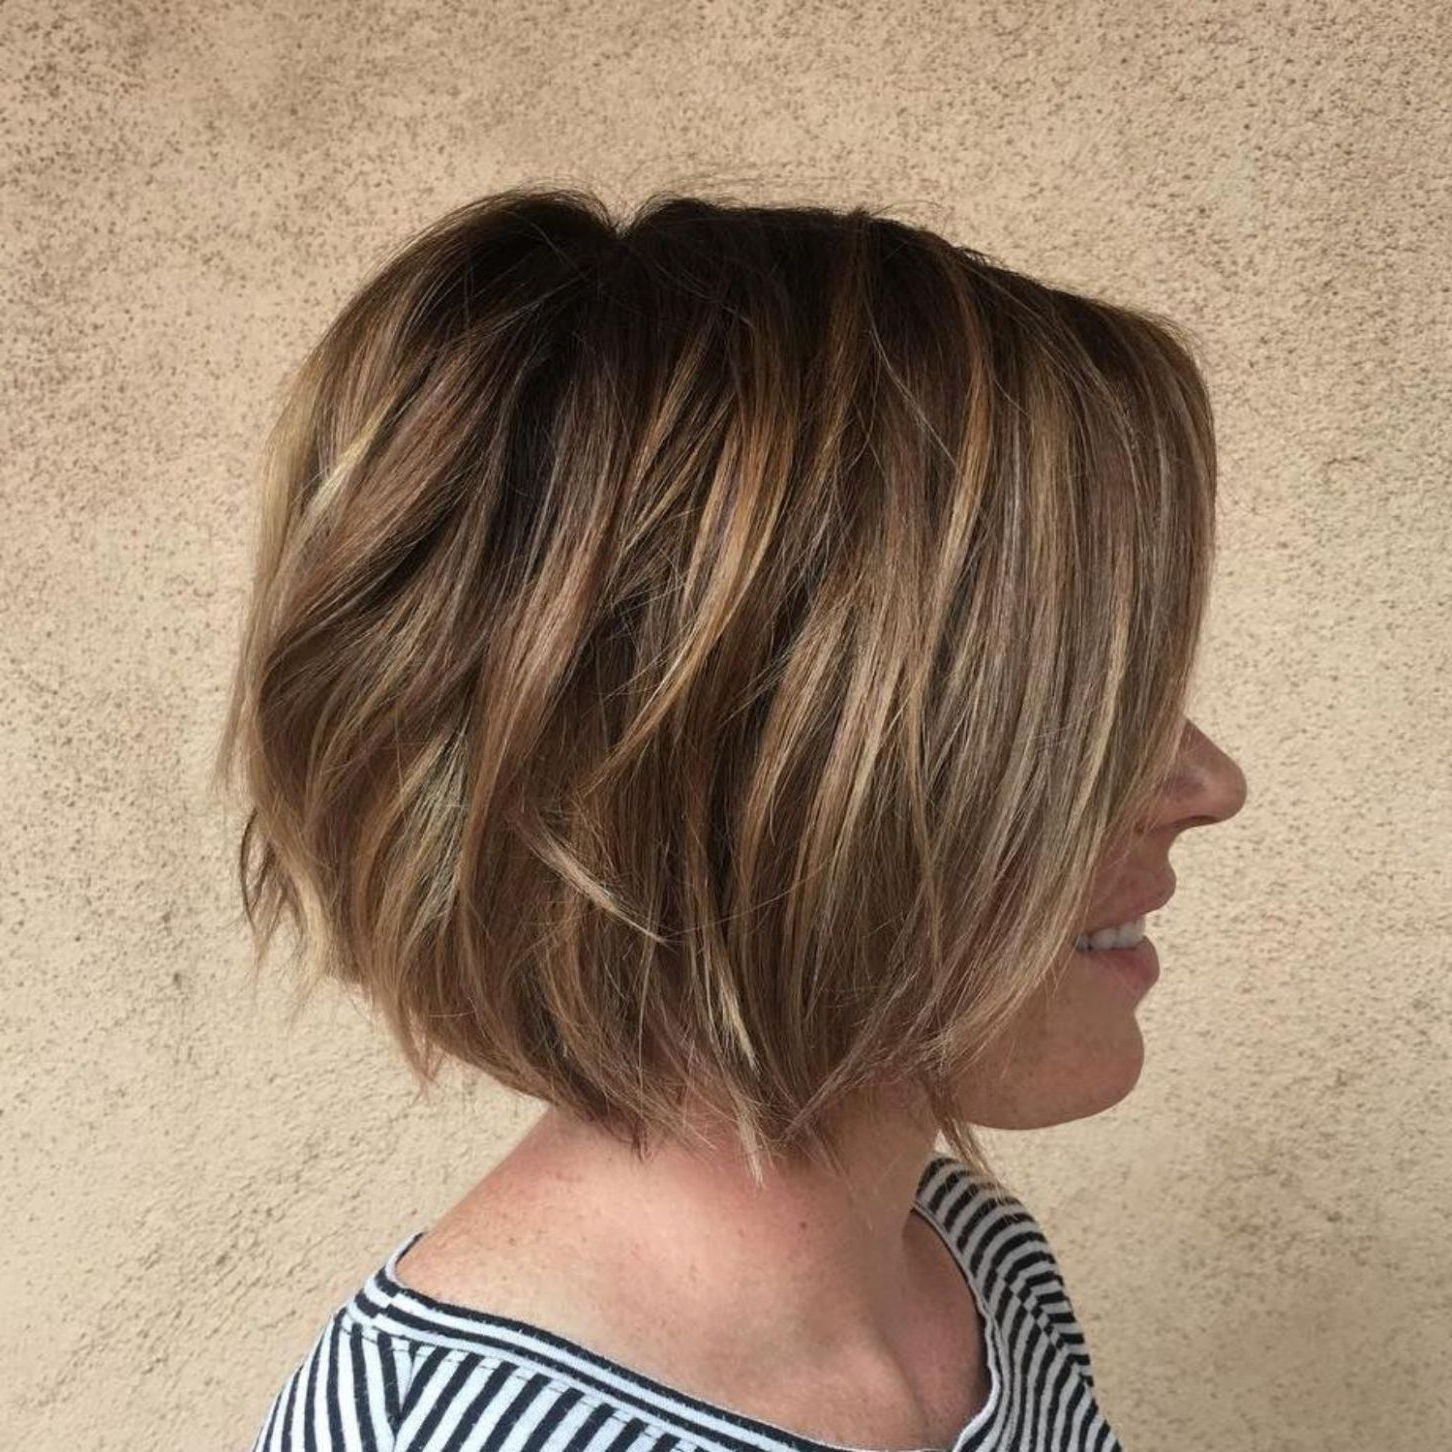 60 Best Short Bob Haircuts And Hairstyles For Women | Hair In Southern Belle Bob Haircuts With Gradual Layers (View 15 of 20)